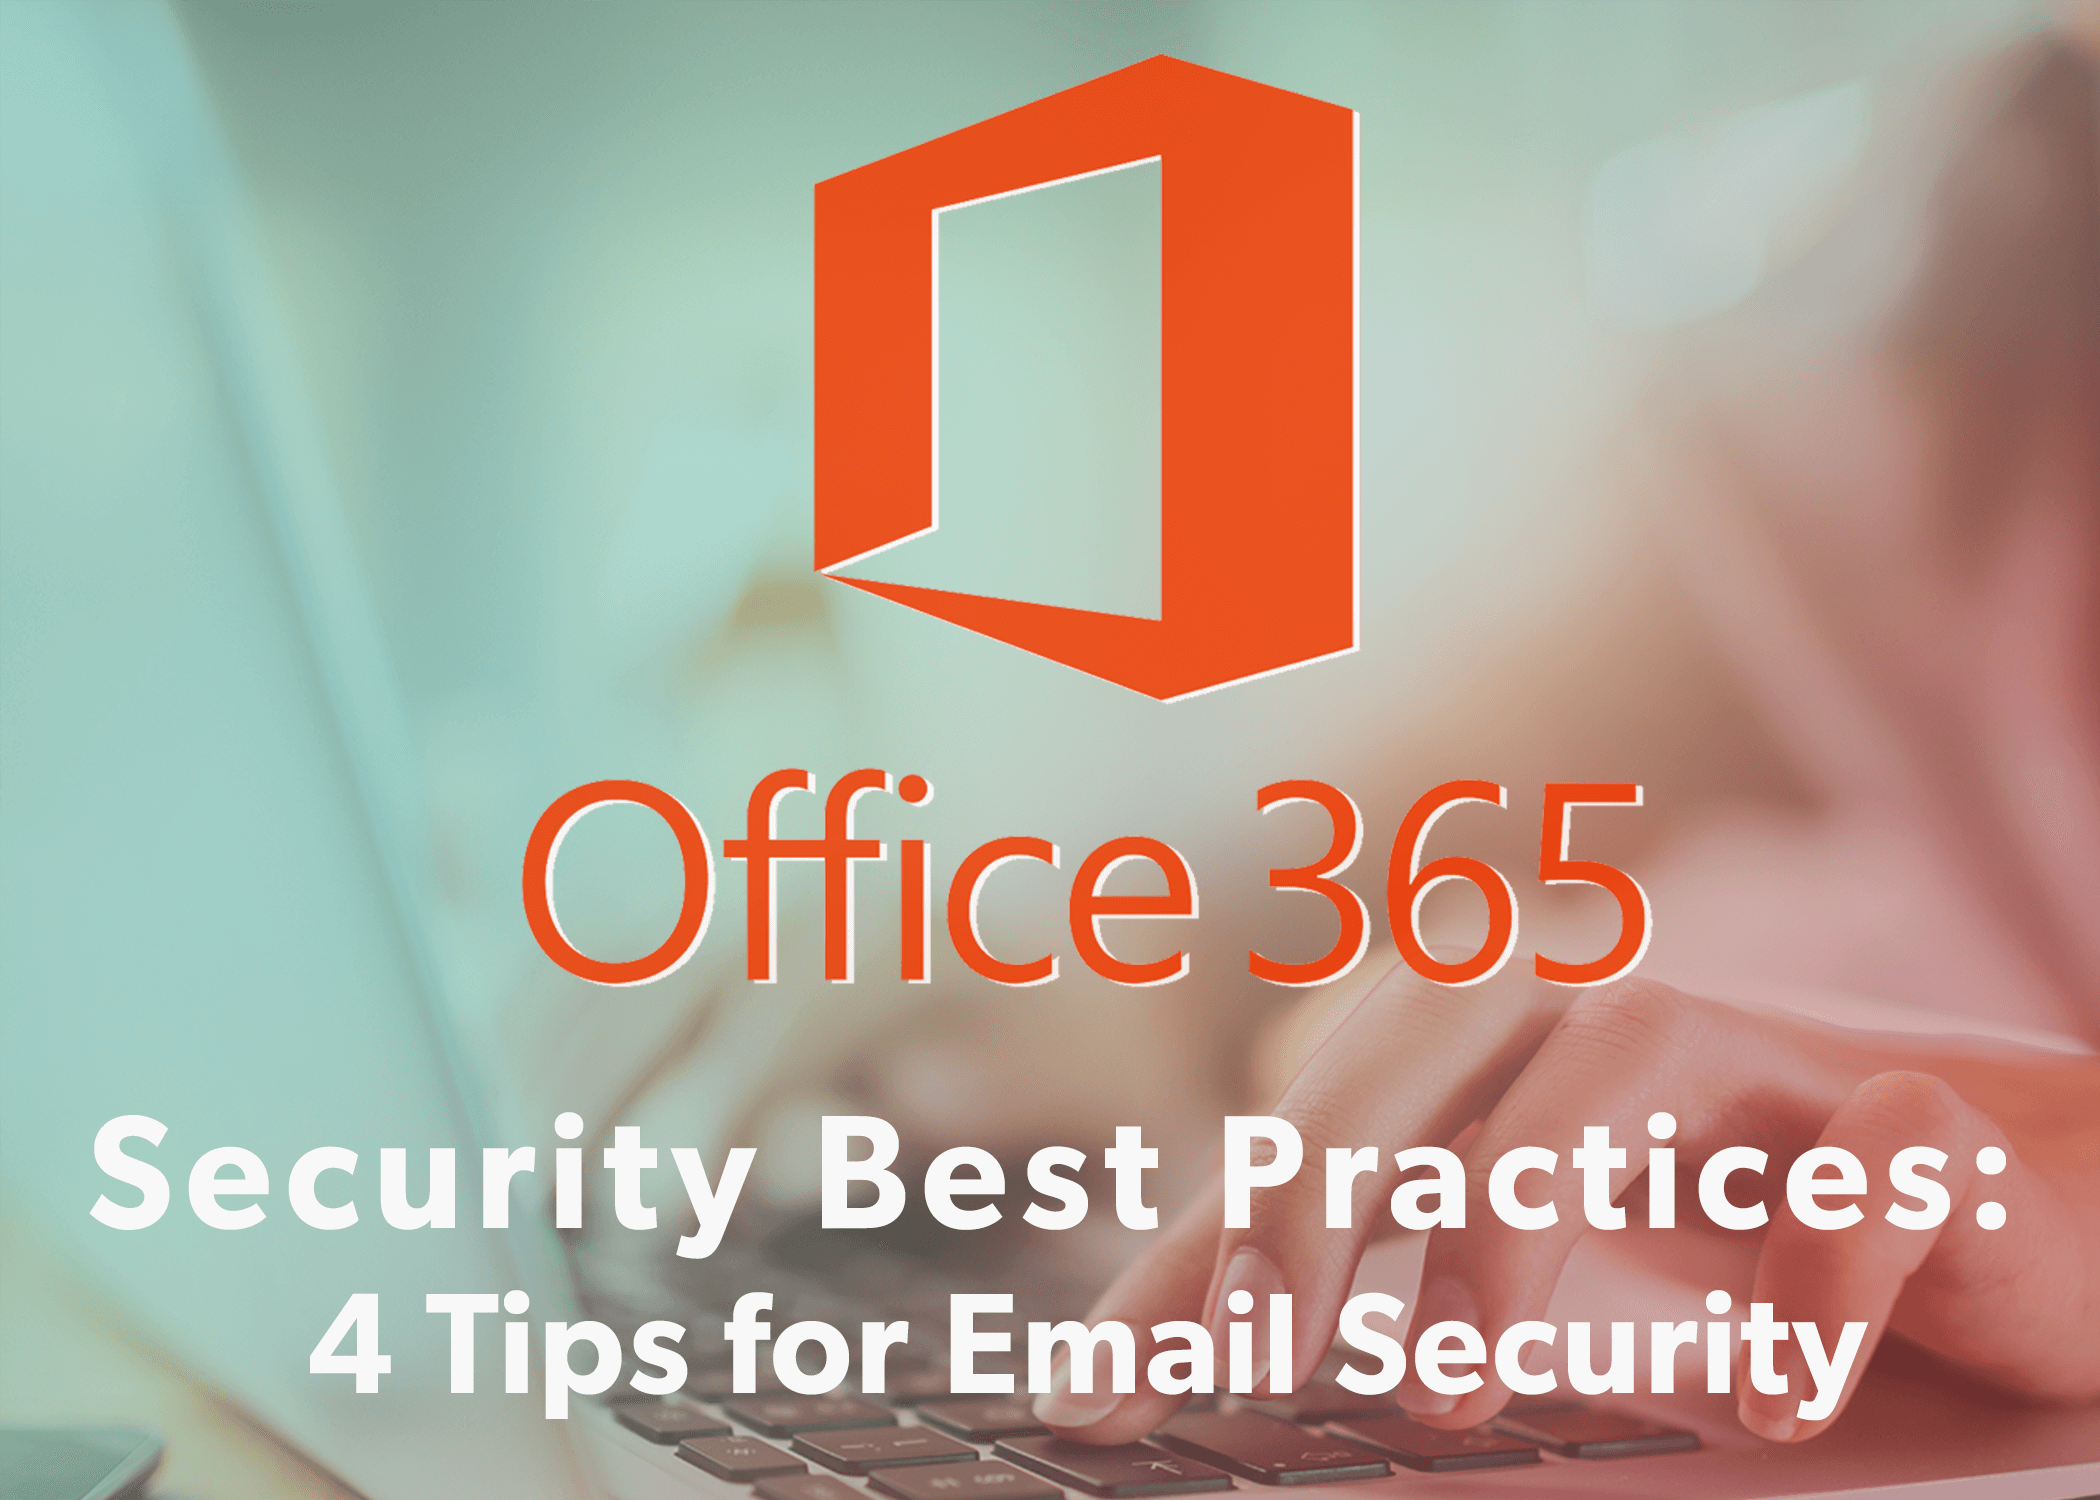 Security Best Practices- 4 Tips for Email Security Thumbnail (compressed)